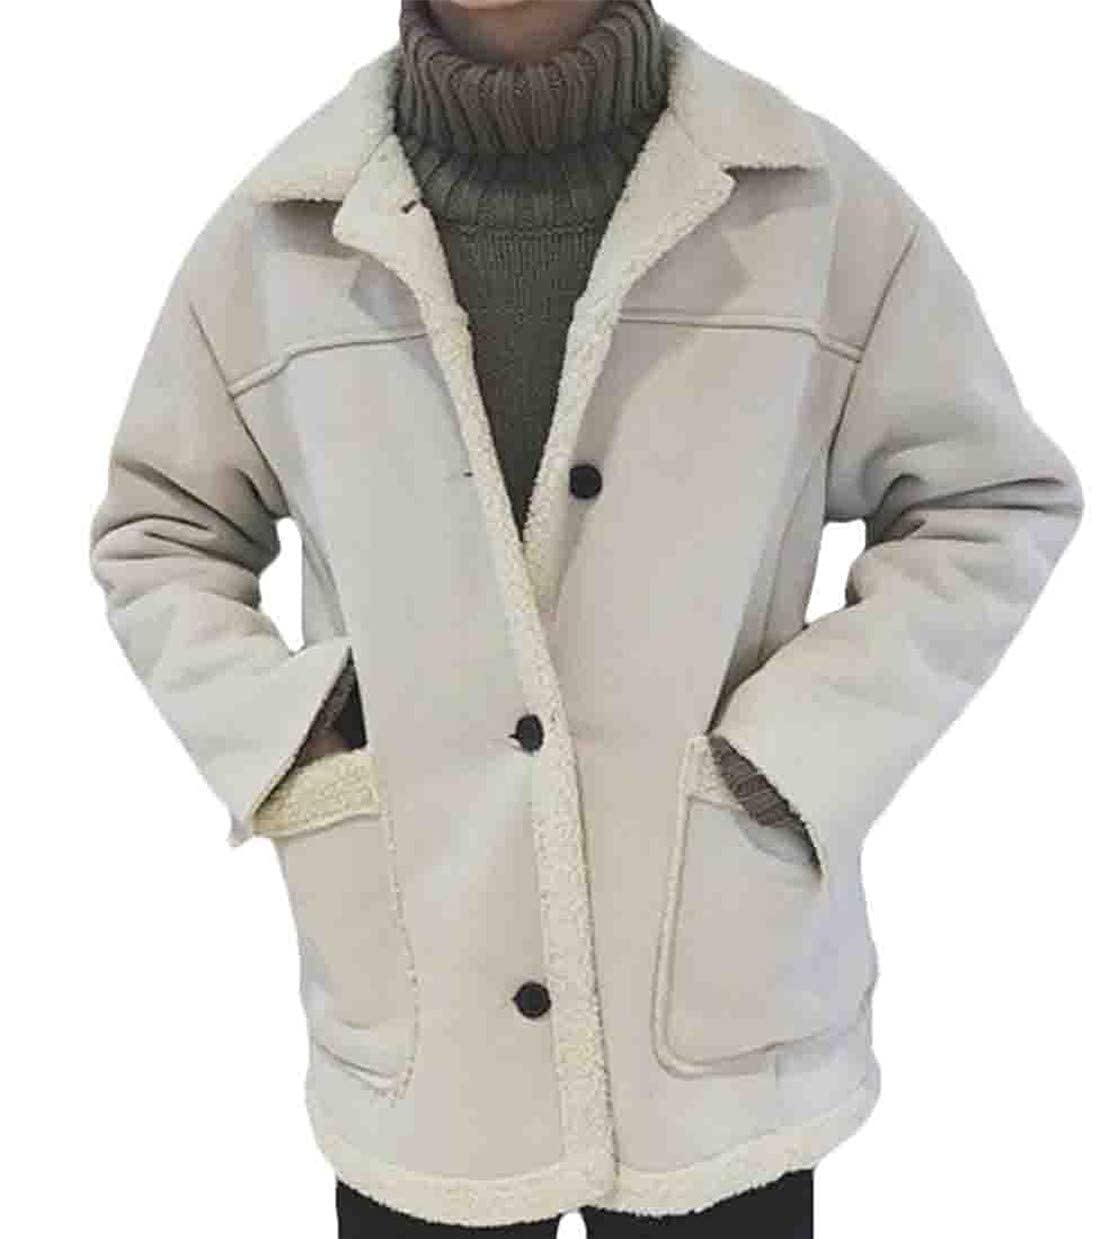 X-Future Mens Outerwear Fleece Faux Suede Sherpa Lined Jacket Thick Winter Loose Coat